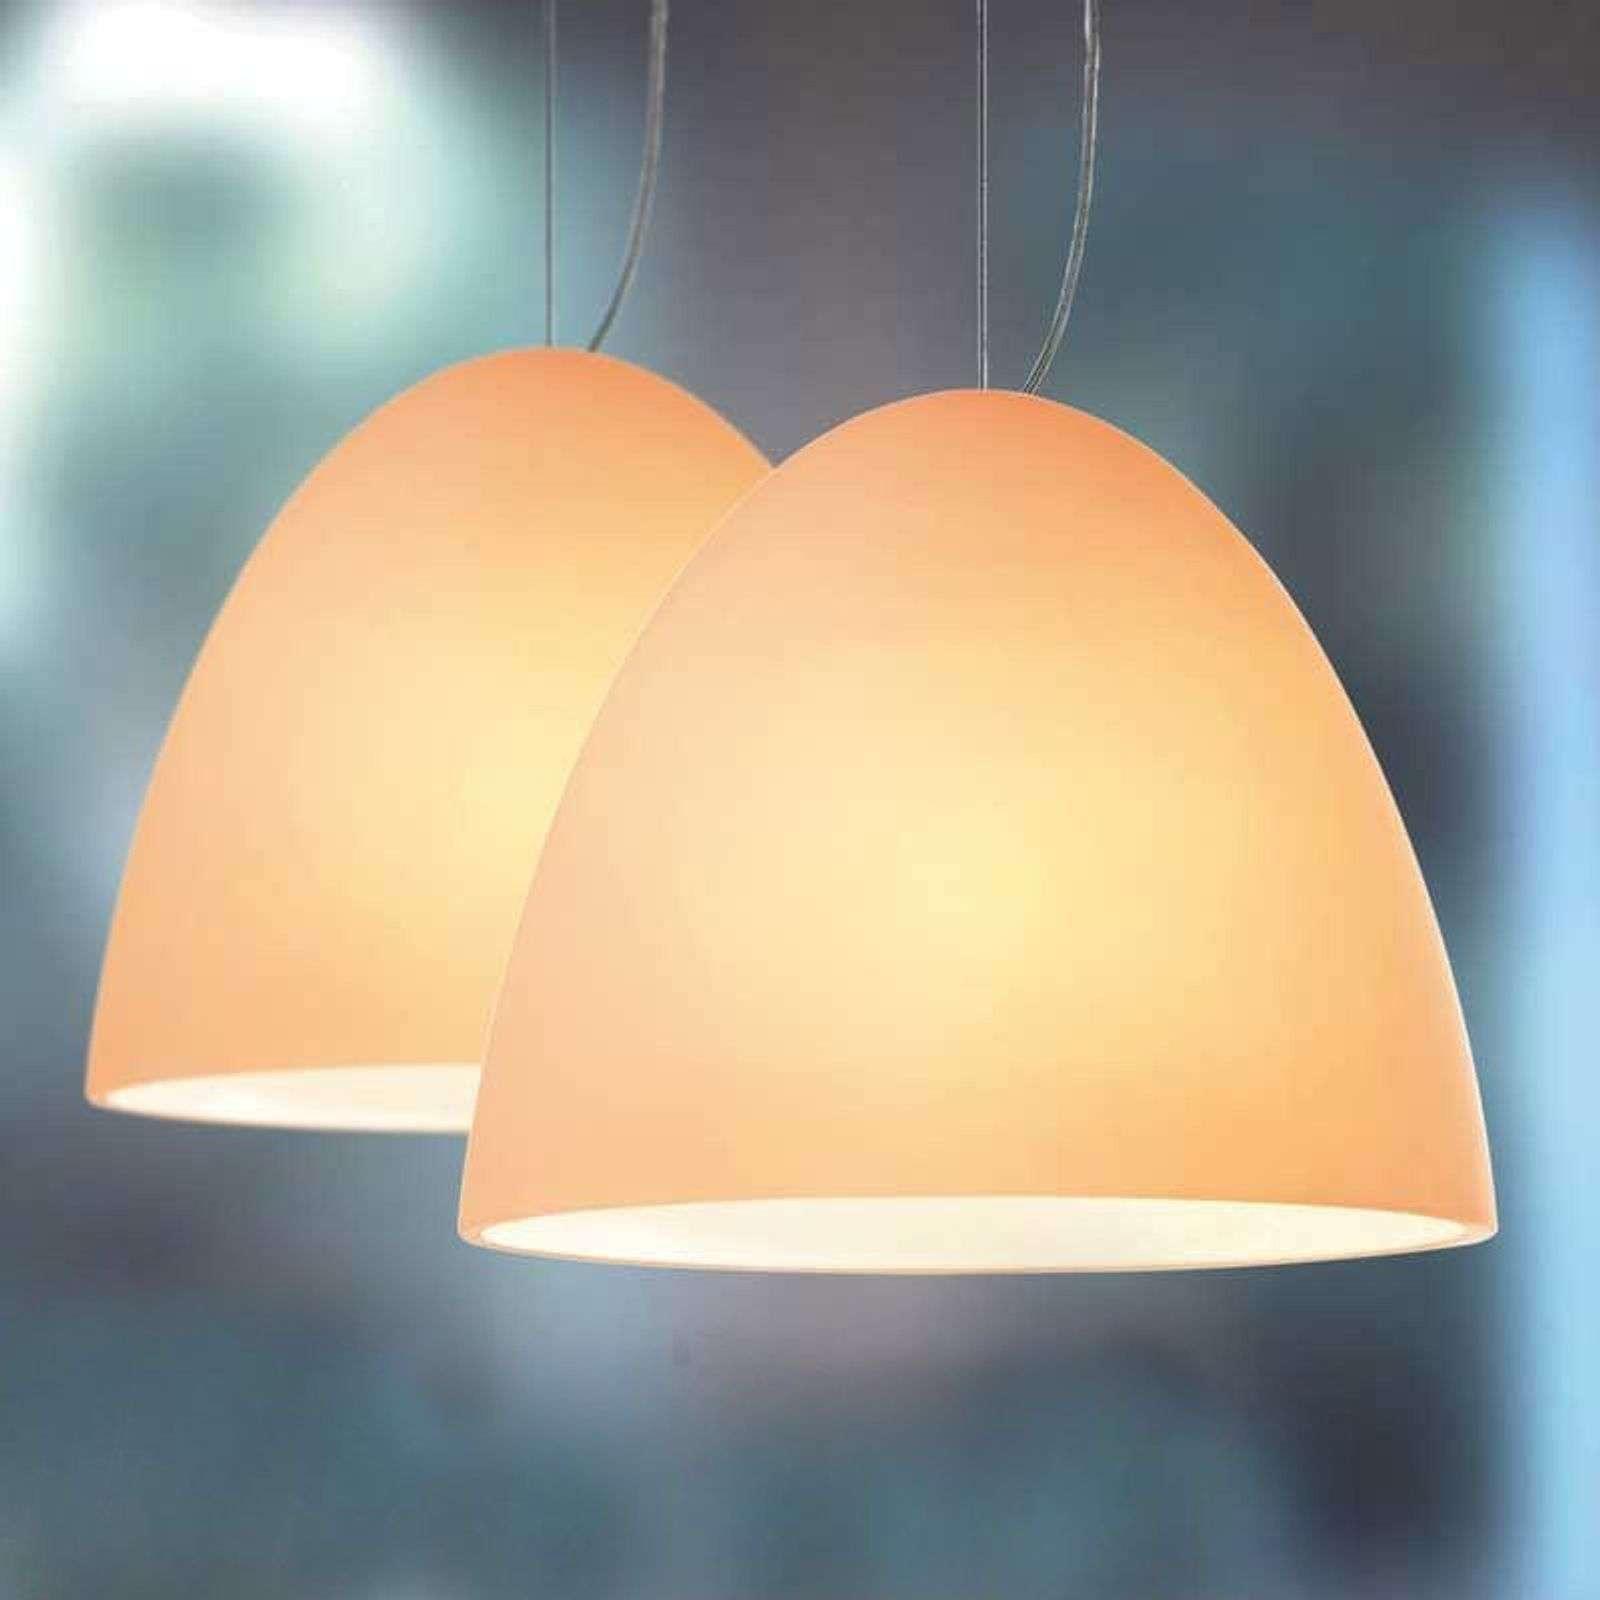 Suspension Bell couleur sable 21 cm 2 lampes